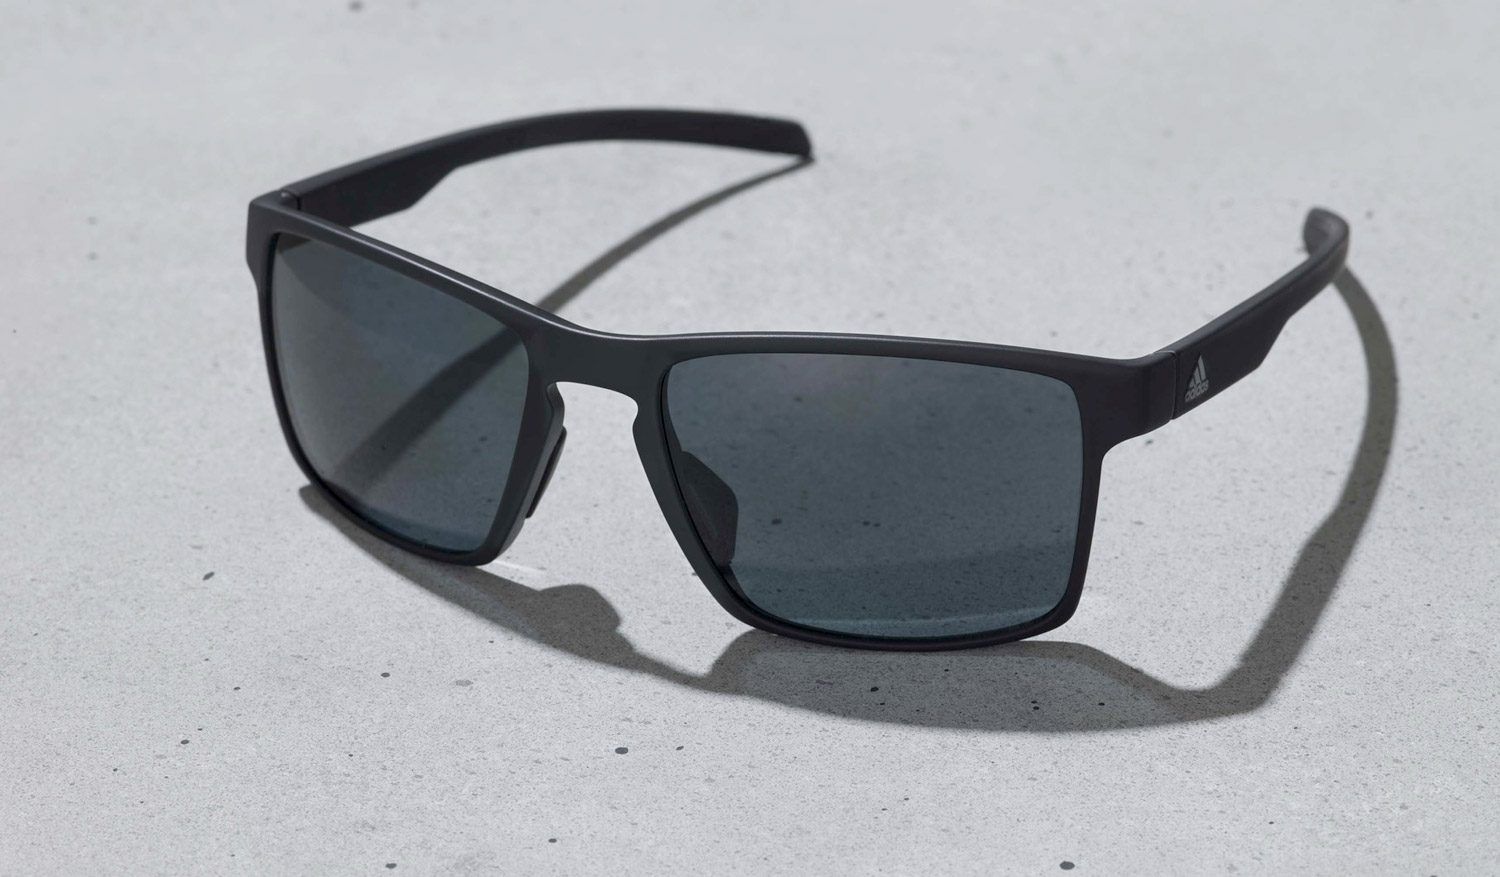 Adidas Sport Eyewear Launches Two New Performance Lifestyle Frames For Everyday Riding